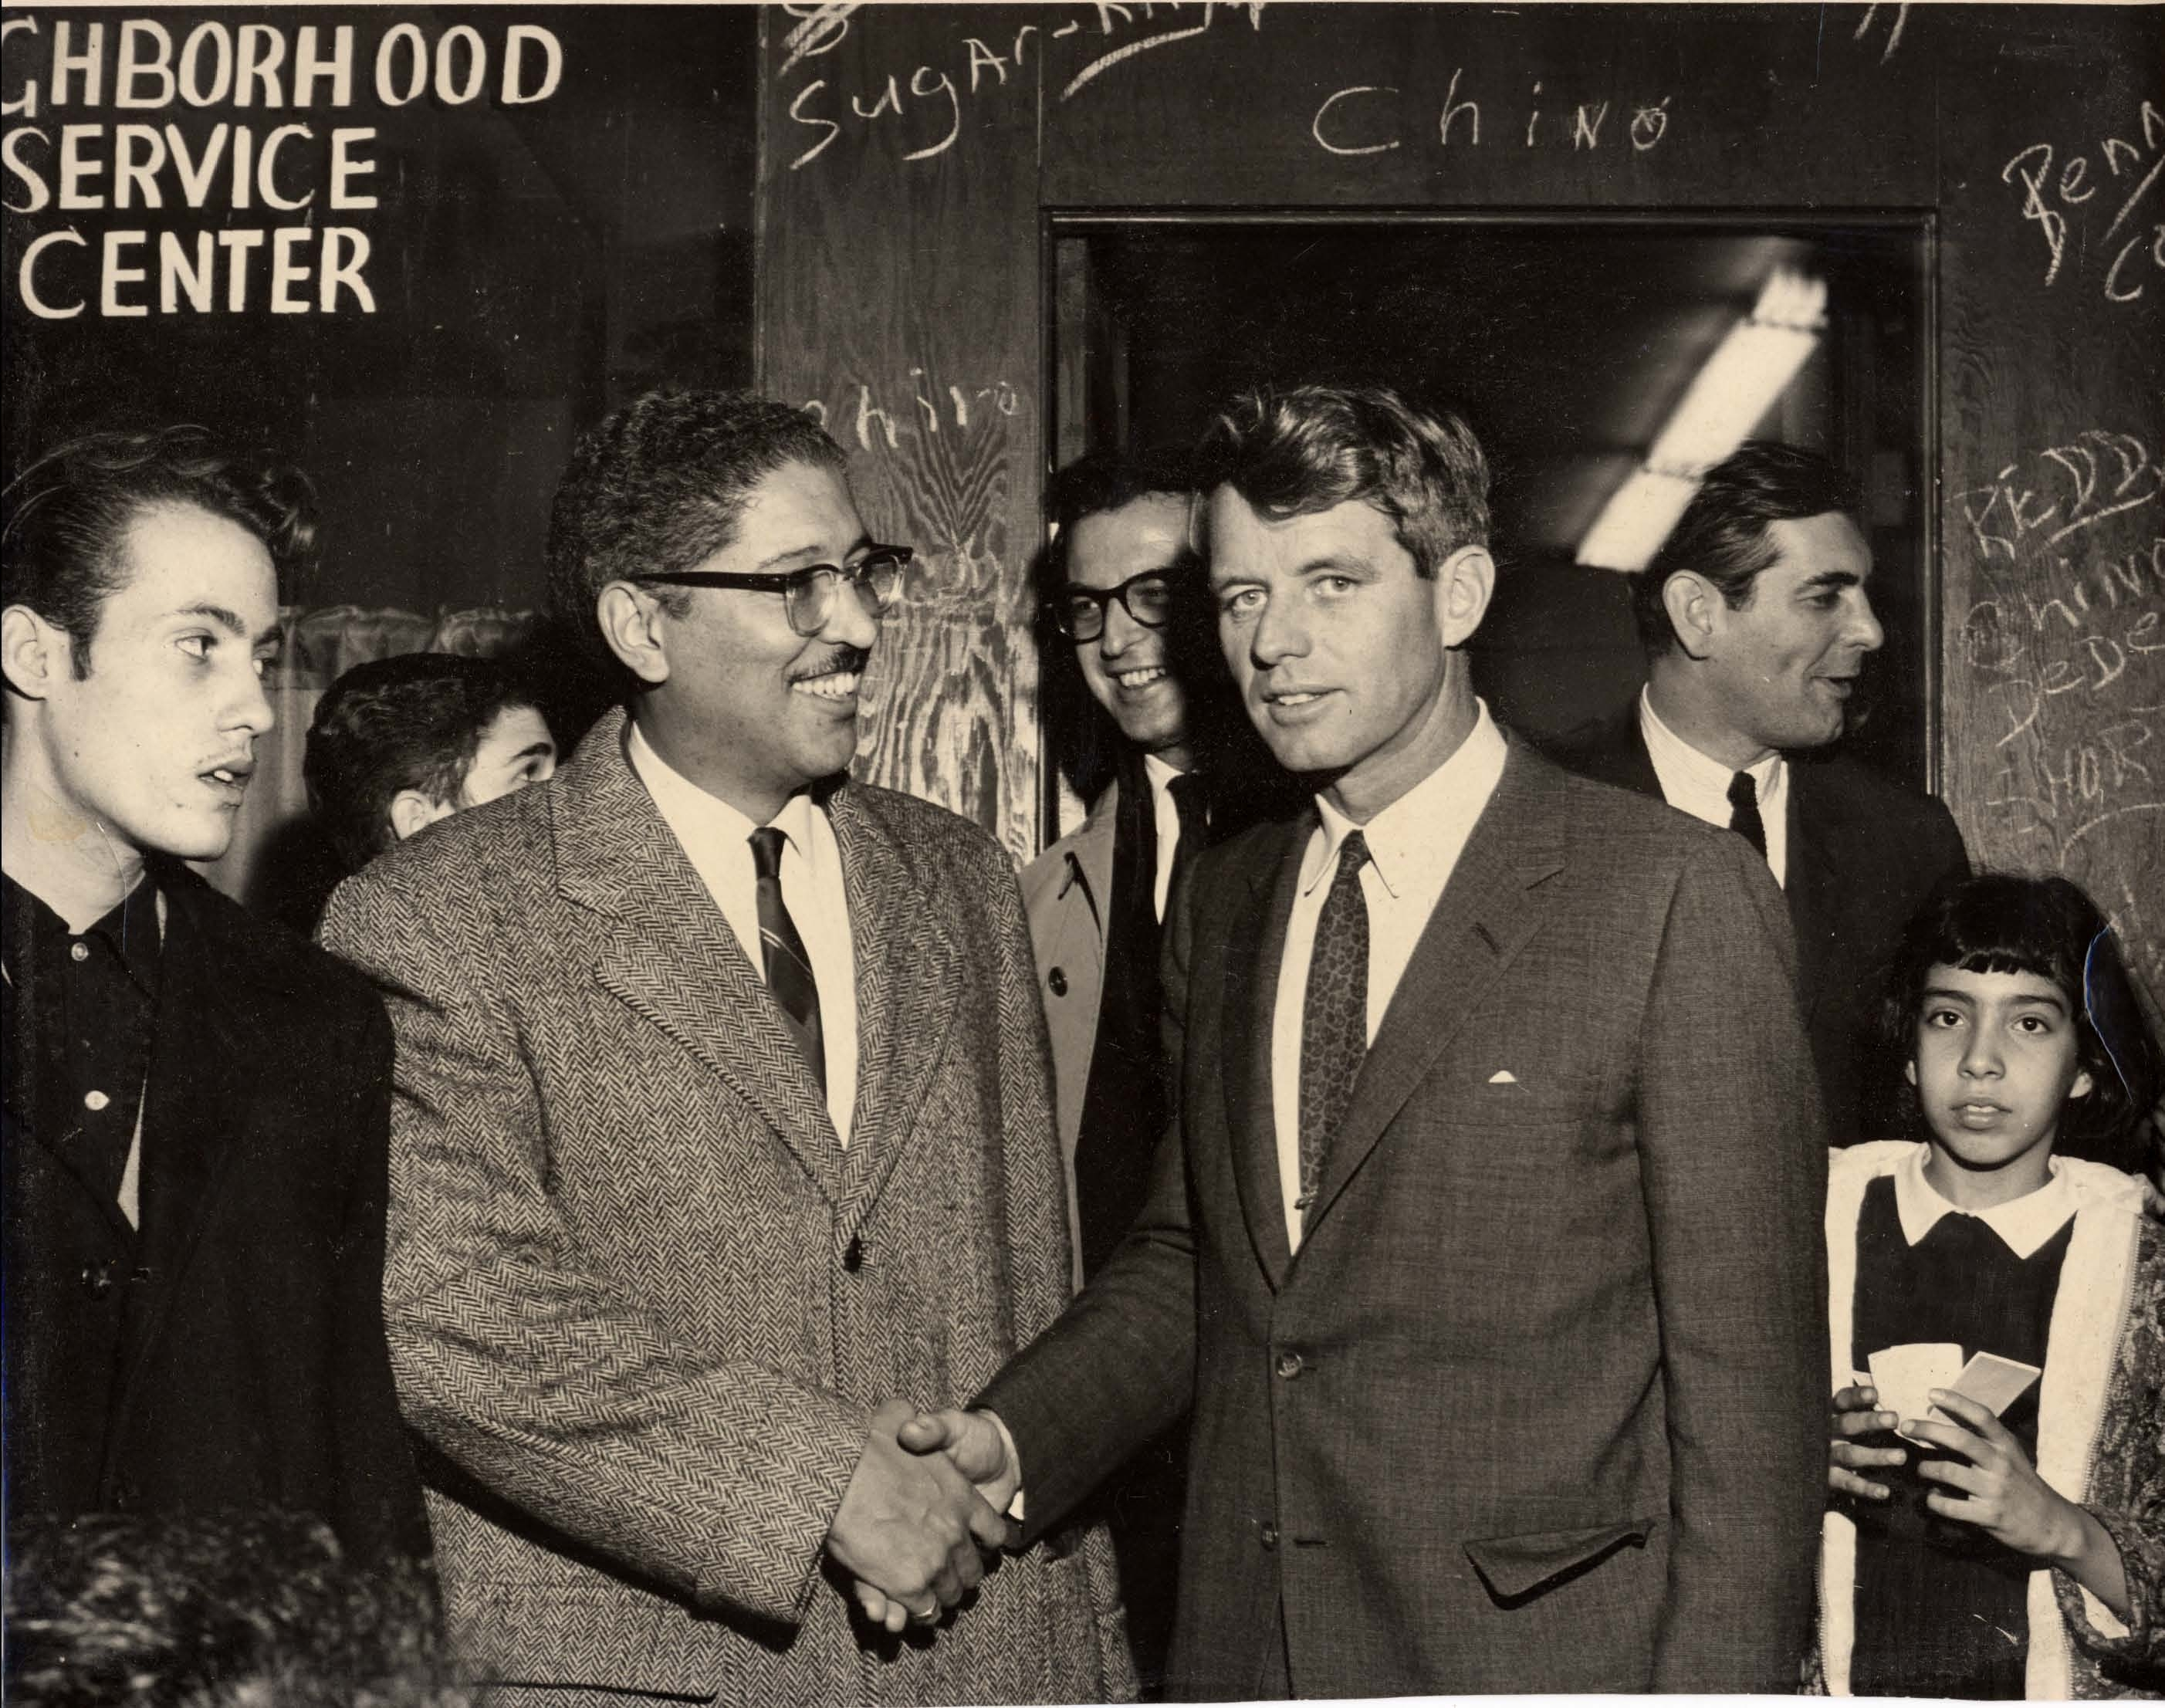 Manny Diaz giving a tour to Attorney General Robert F. Kennedy on the Lower East Side, c. 1963 (Courtesy of Andrea Diaz)